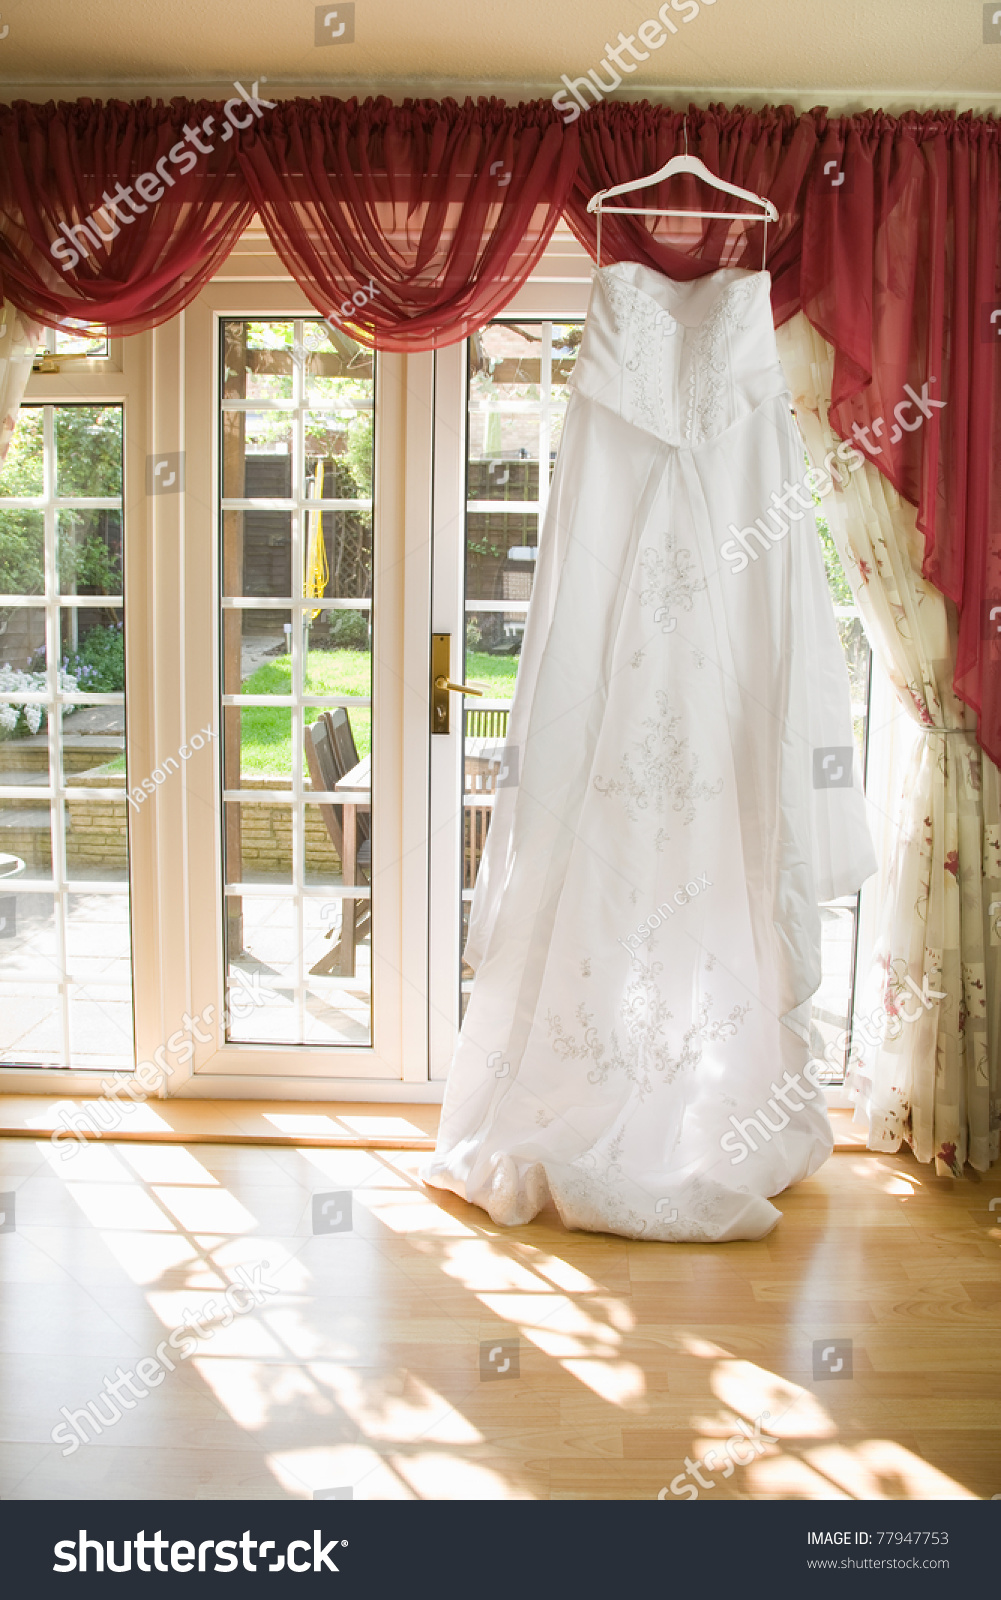 See sun shining through dress - White Wedding Dress Hanging From A Curtain Pole With The Sun Shining Through The Window